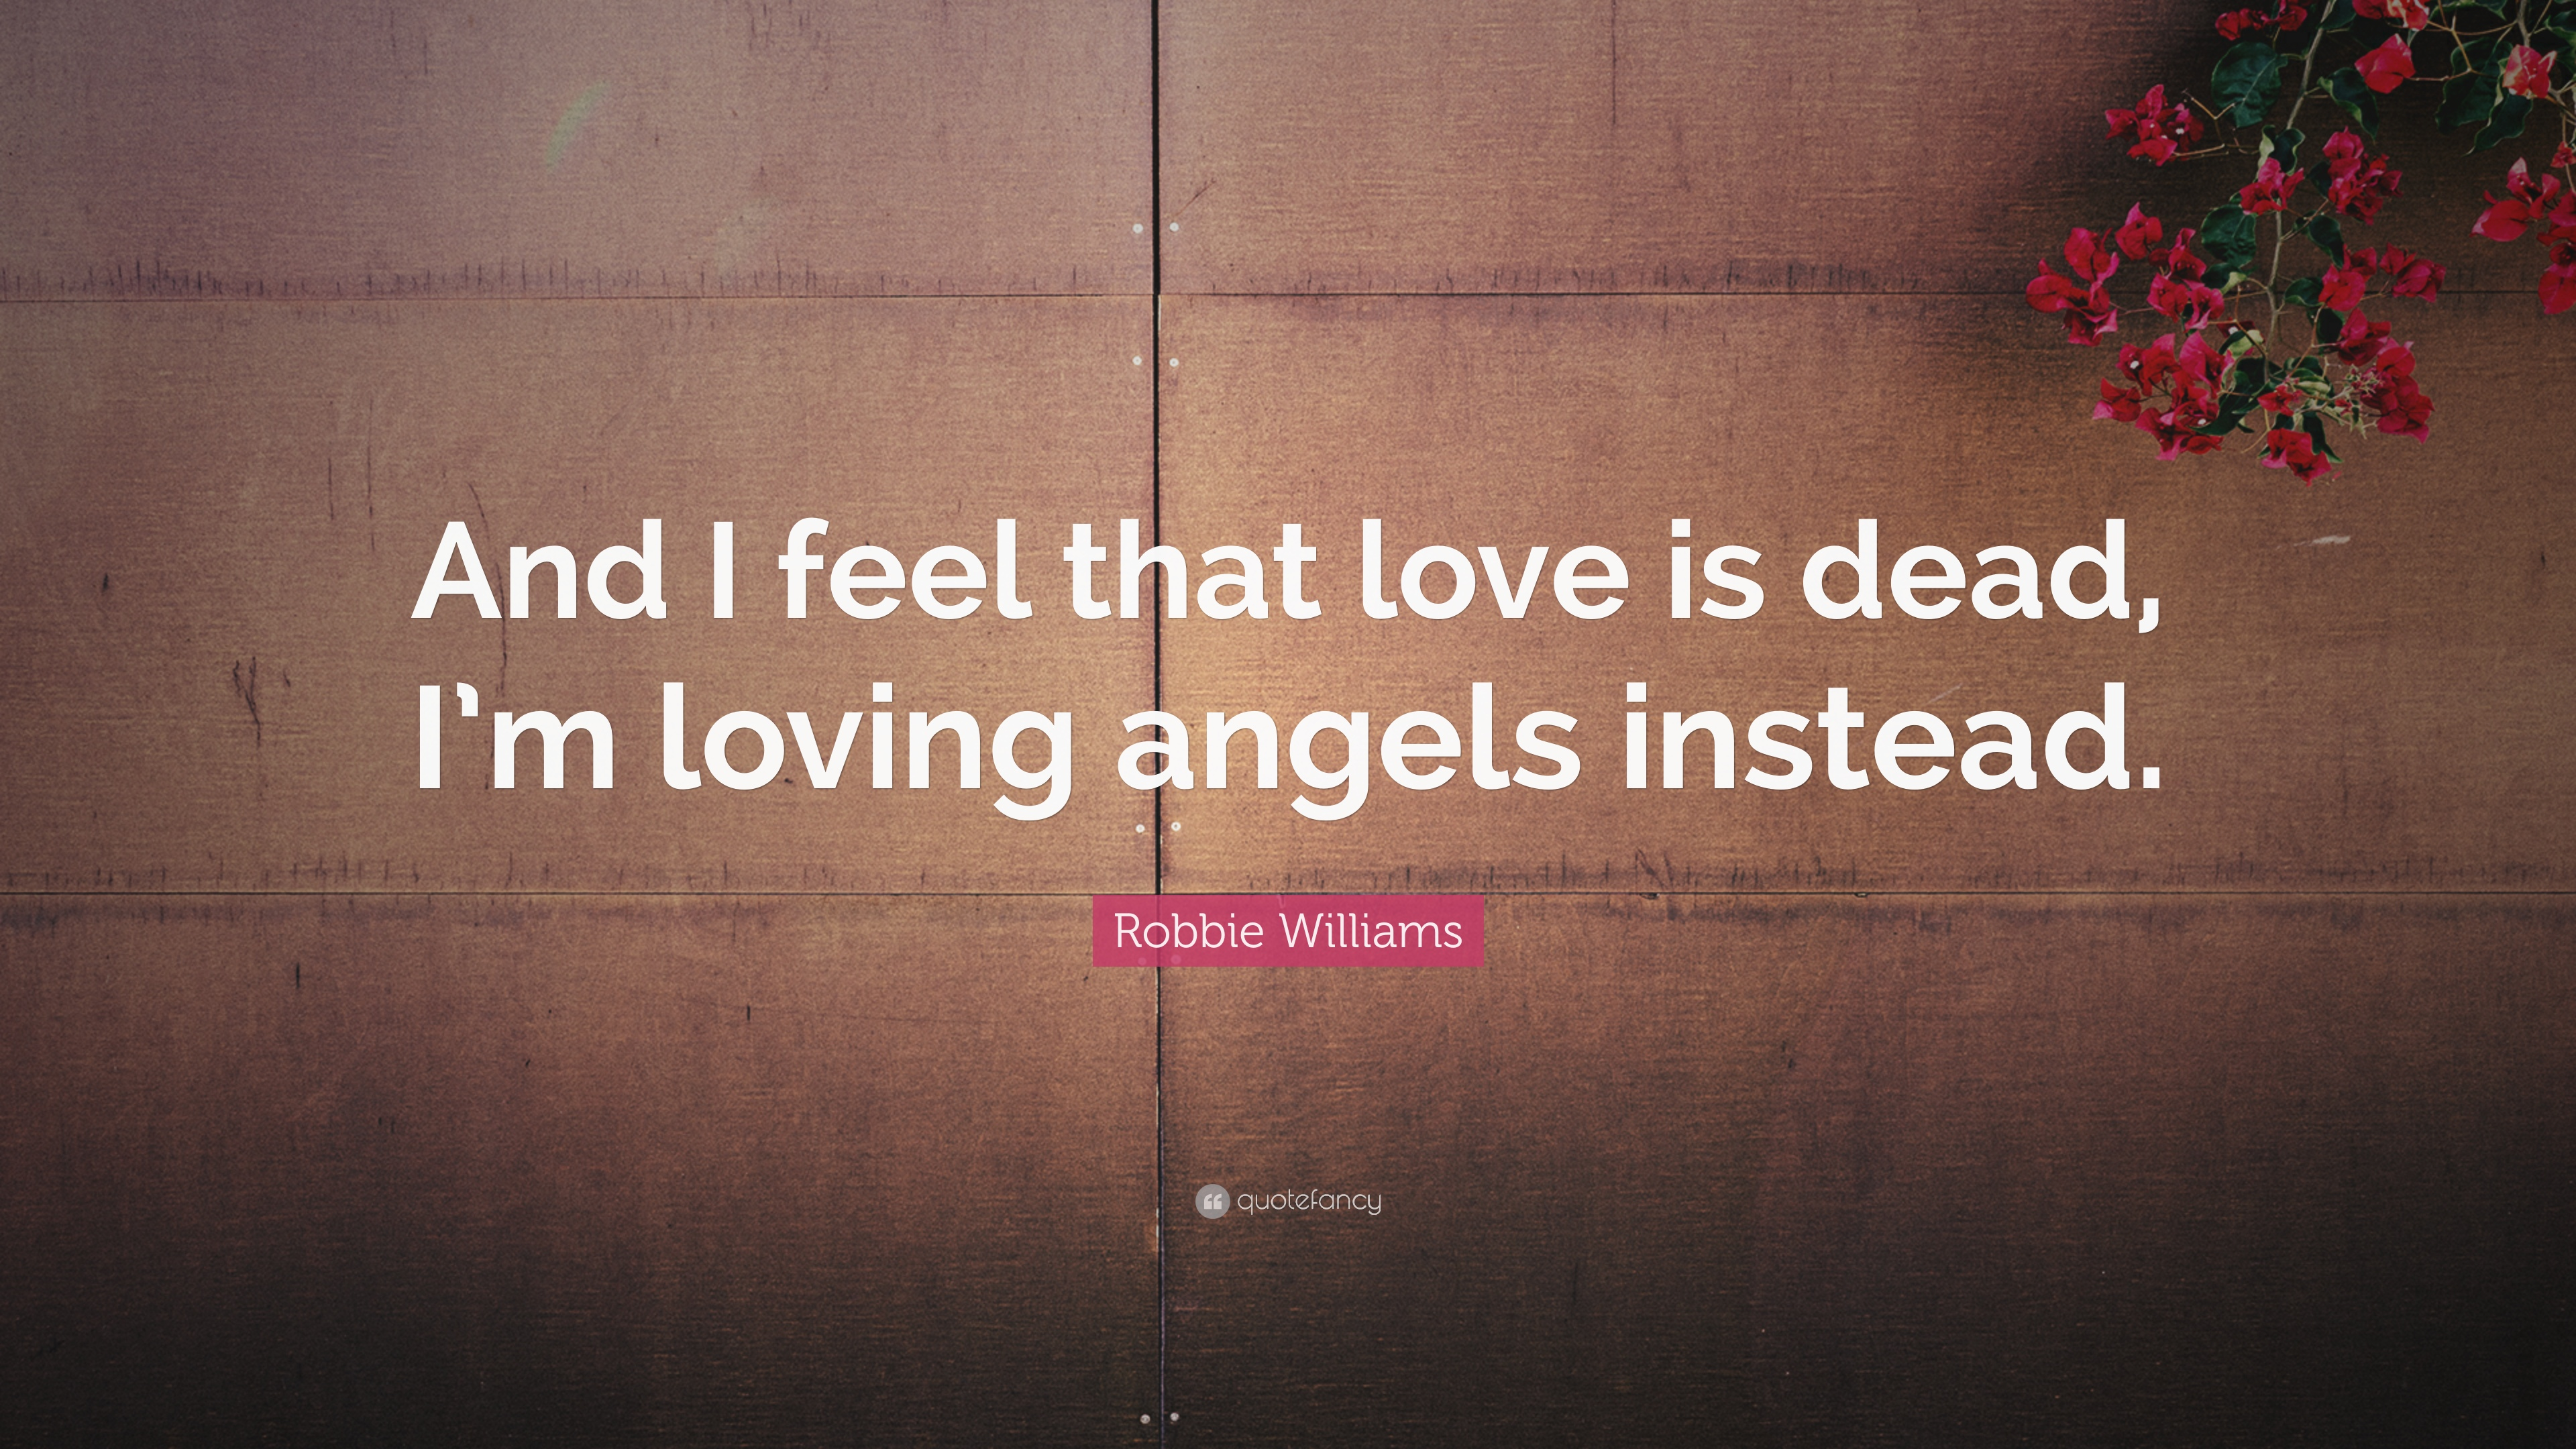 Great Wallpaper Love Feel - 1136215-Robbie-Williams-Quote-And-I-feel-that-love-is-dead-I-m-loving  Trends_123128.jpg